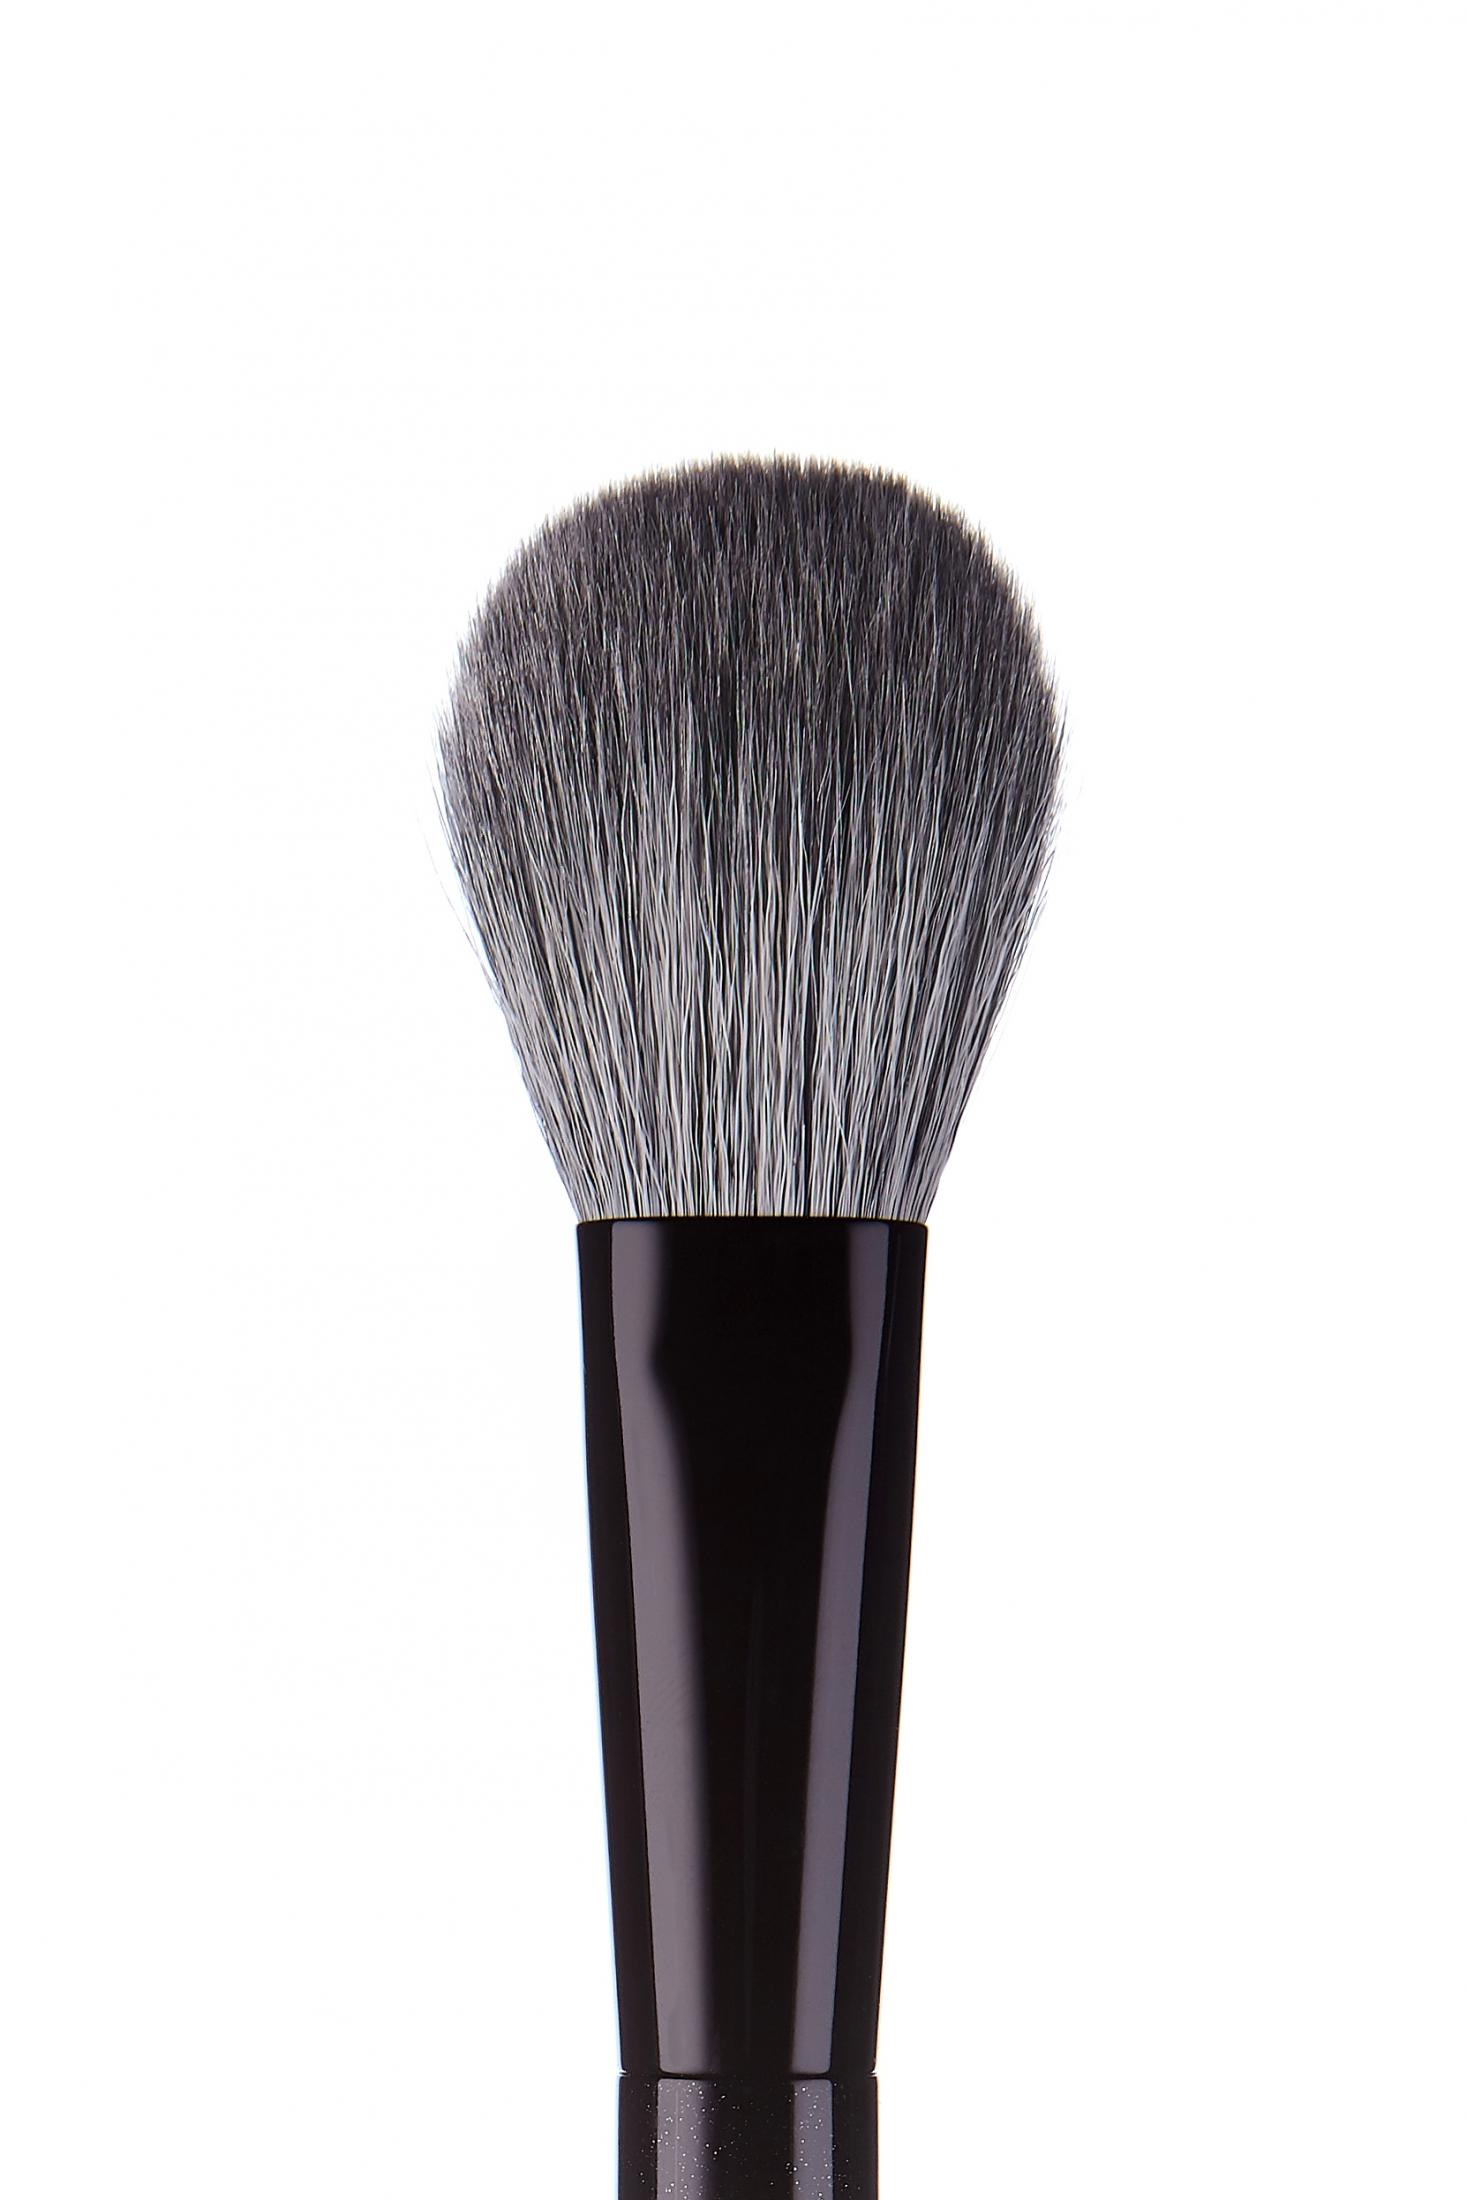 Hair of Annbeauty T2 is for Dry and Creamy texture of Blush and Powder - Limited Edition